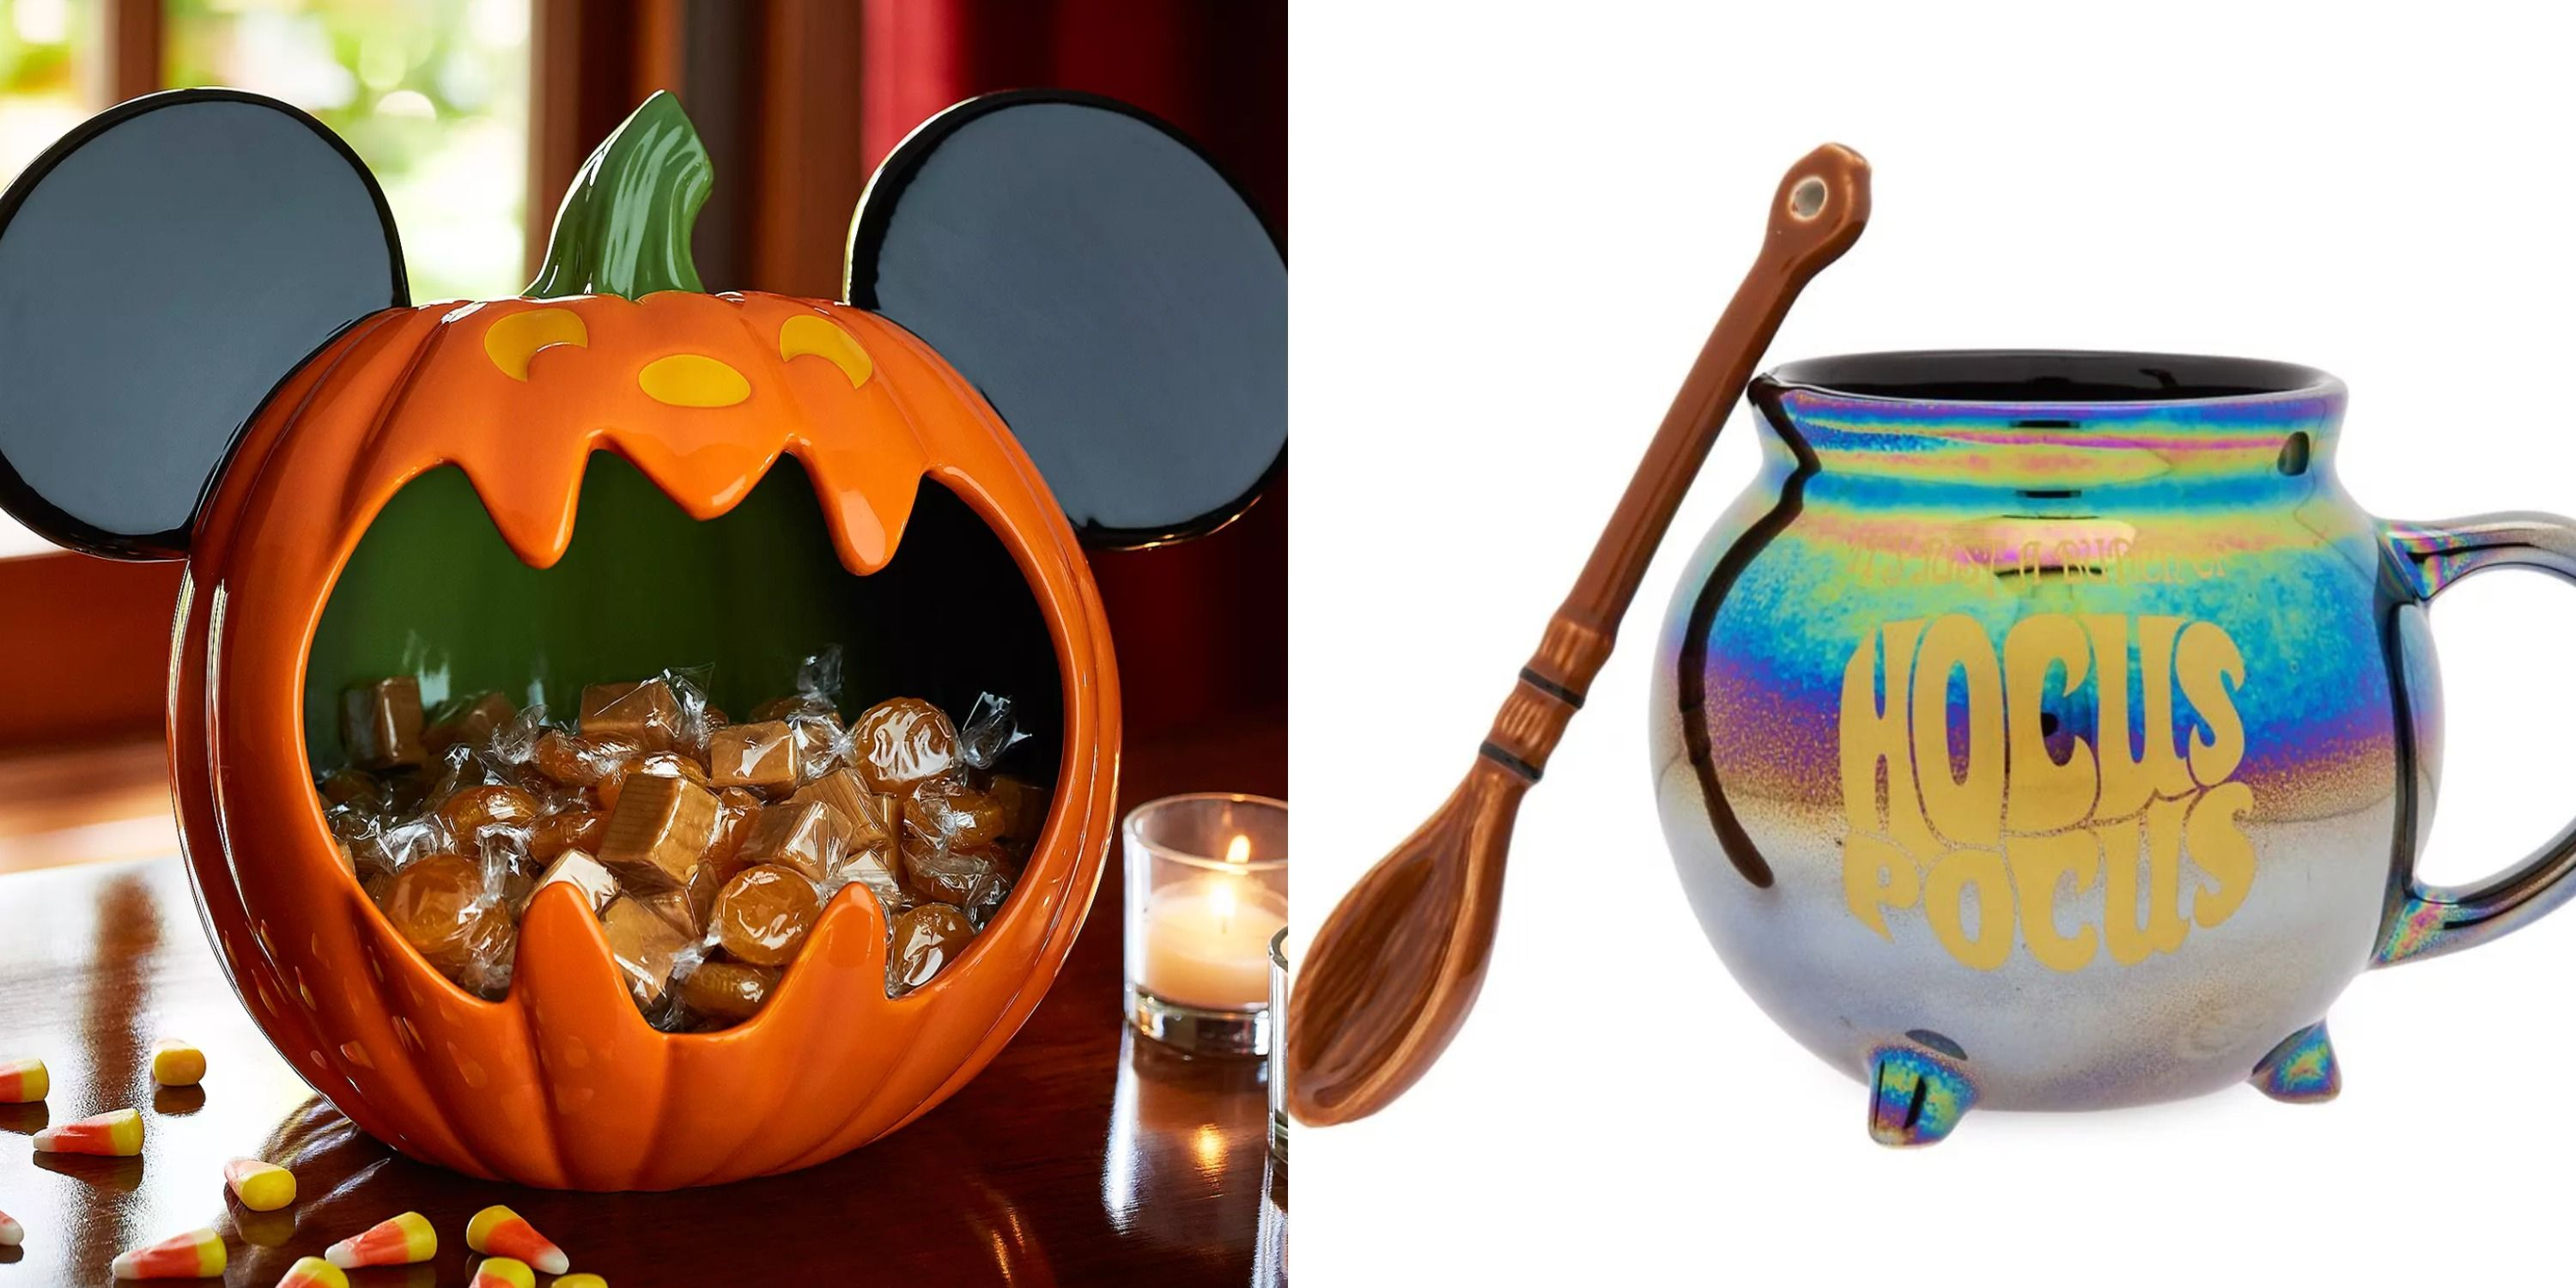 Halloween 2020 Is Perfect Disney Is Selling A Colorful 'Hocus Pocus' Mug Set This Halloween